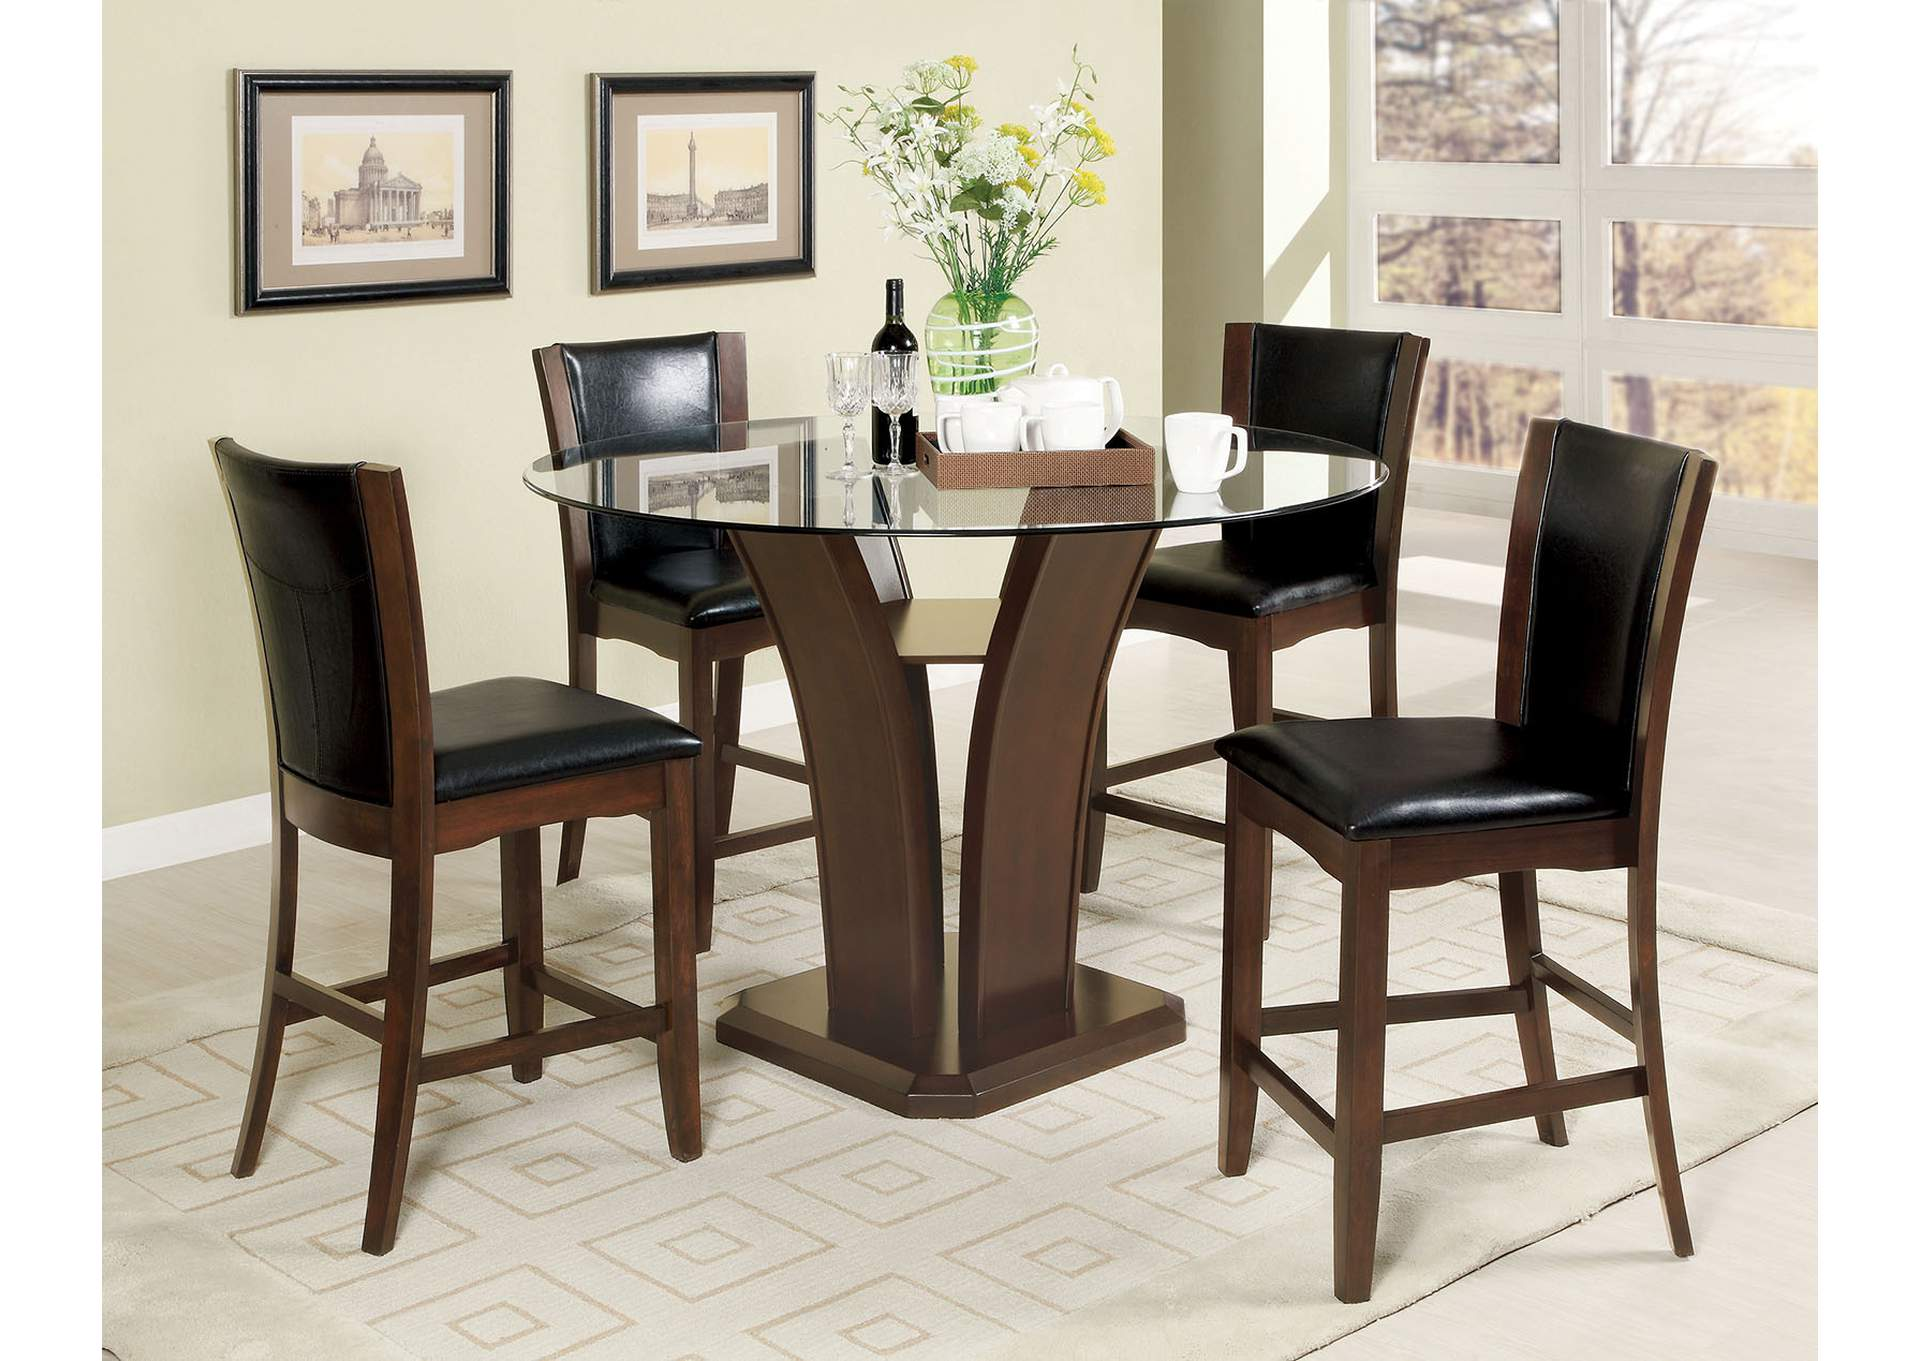 glass top counter height table and chairs espresso manhattan lll round glass top counter height table w2 chairs furniture brothers fine furniture